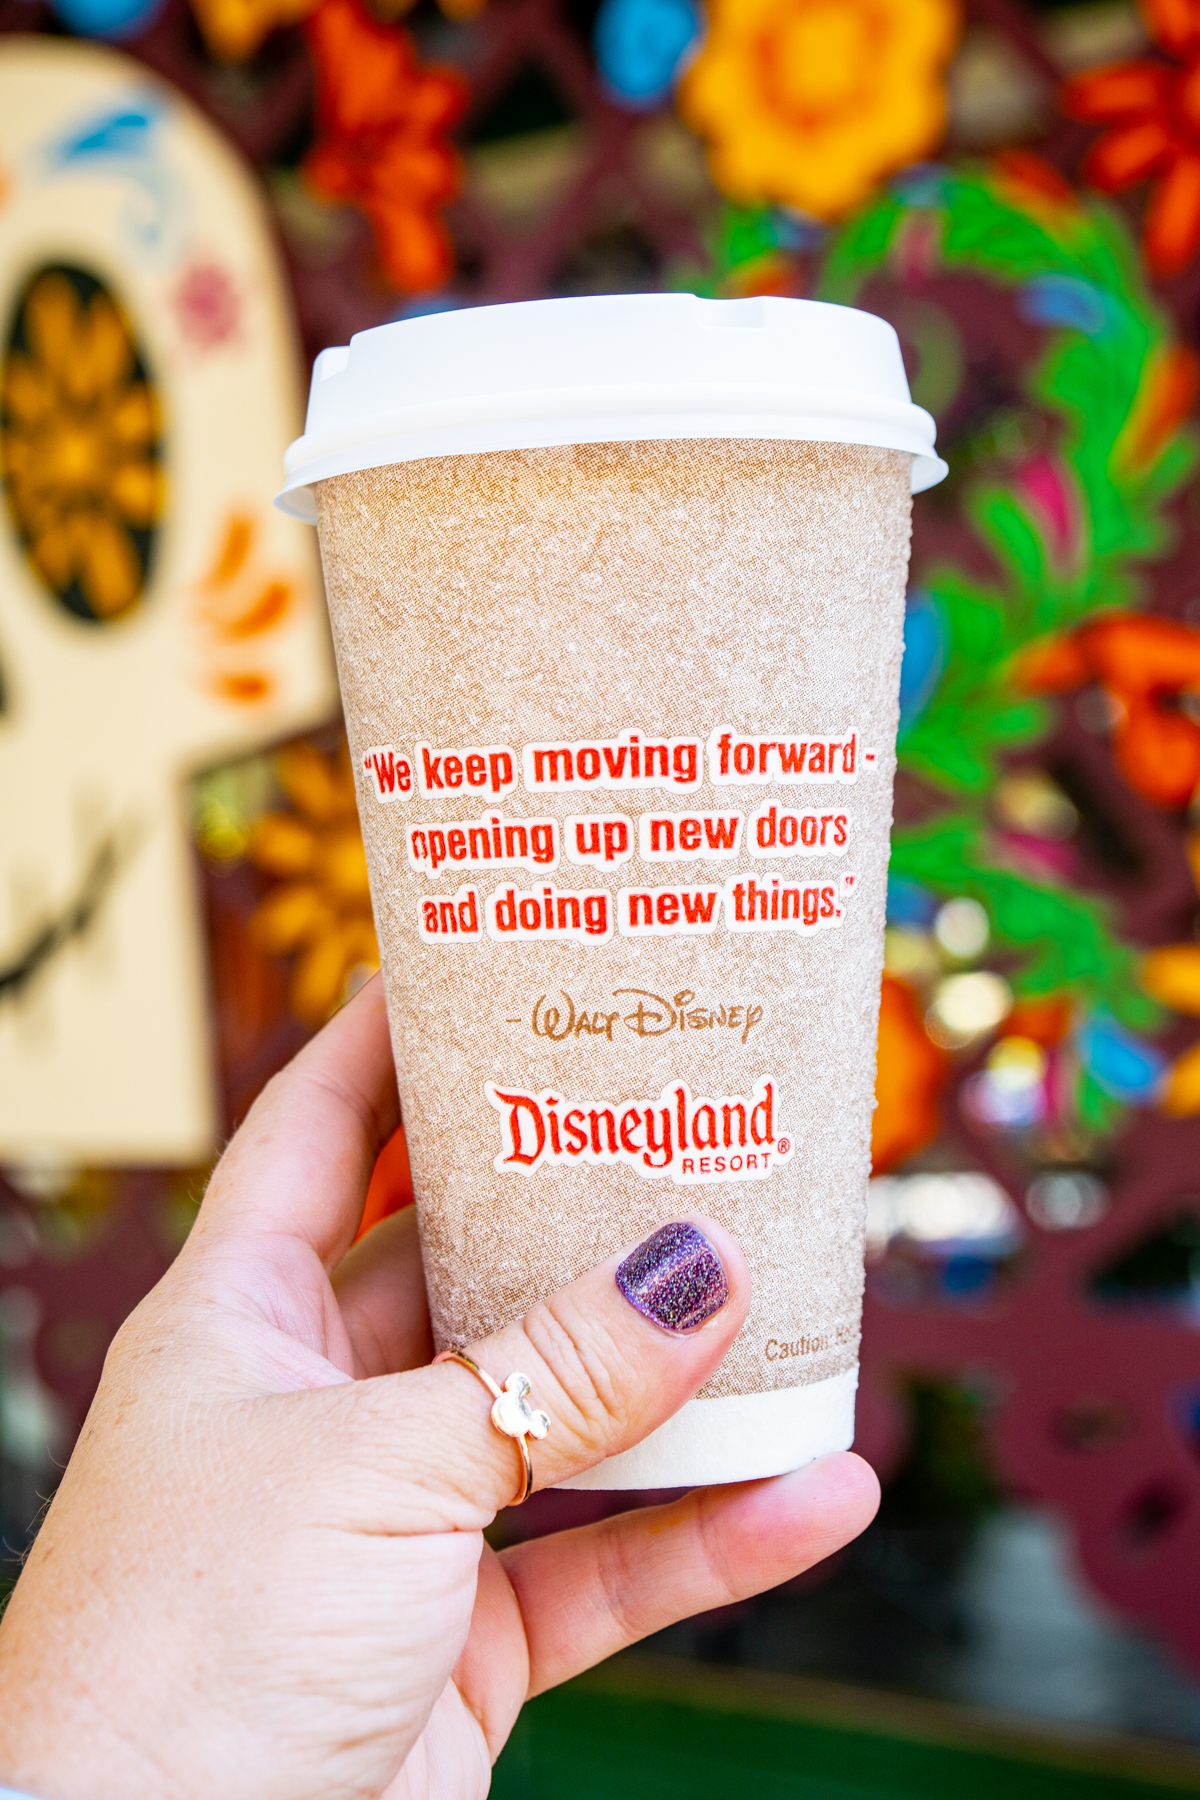 hand holding a Disneyland hot chocolate cup